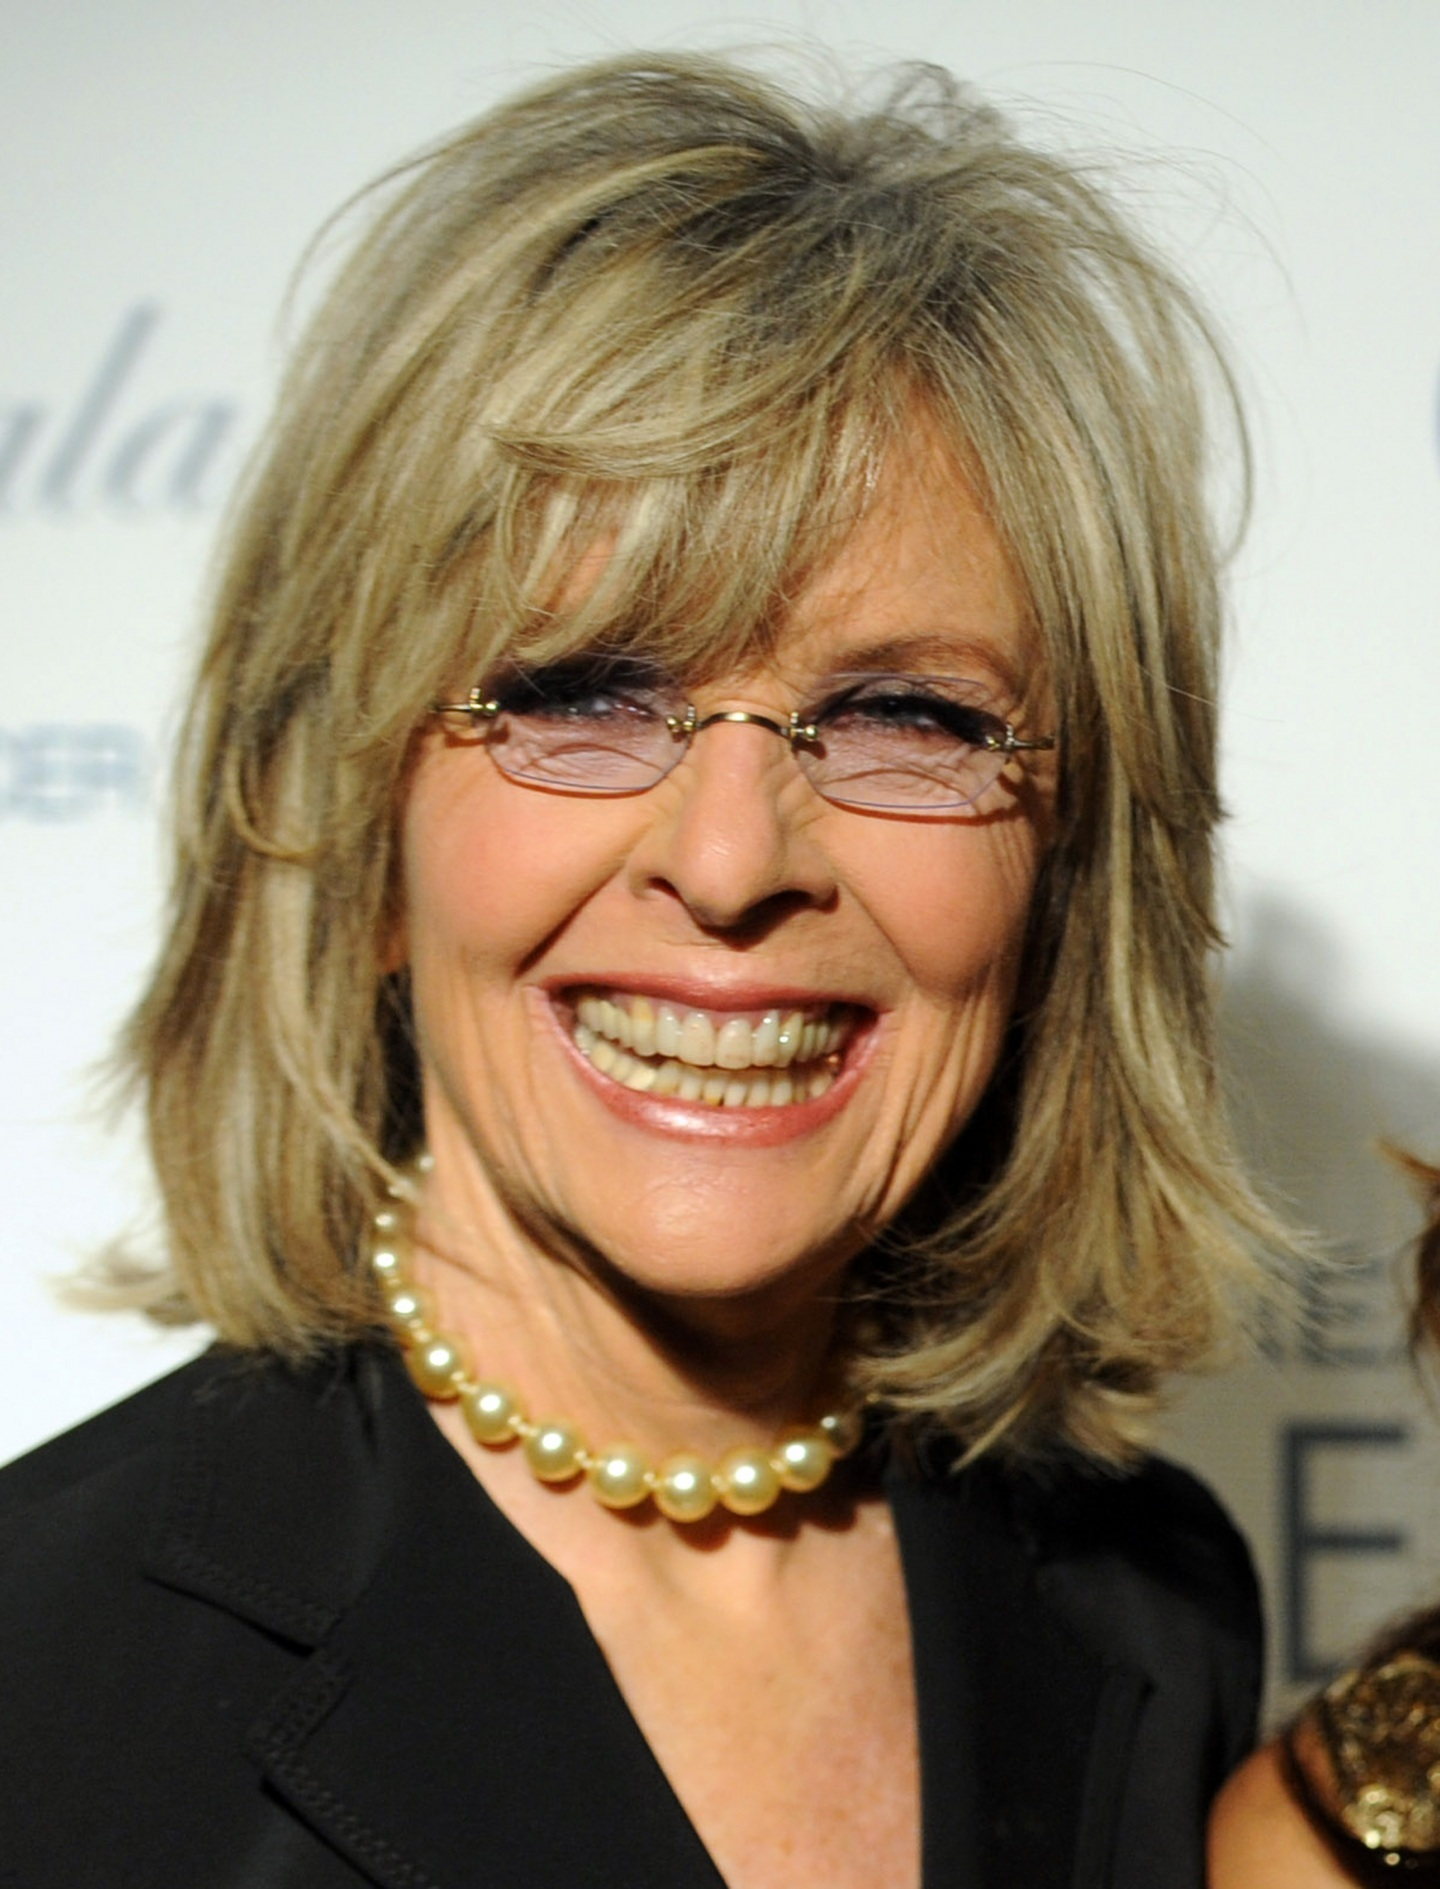 Diane Keaton After nose job Surgery VIP - Hairstyles For 60 Year Old Woman With Fine Hair